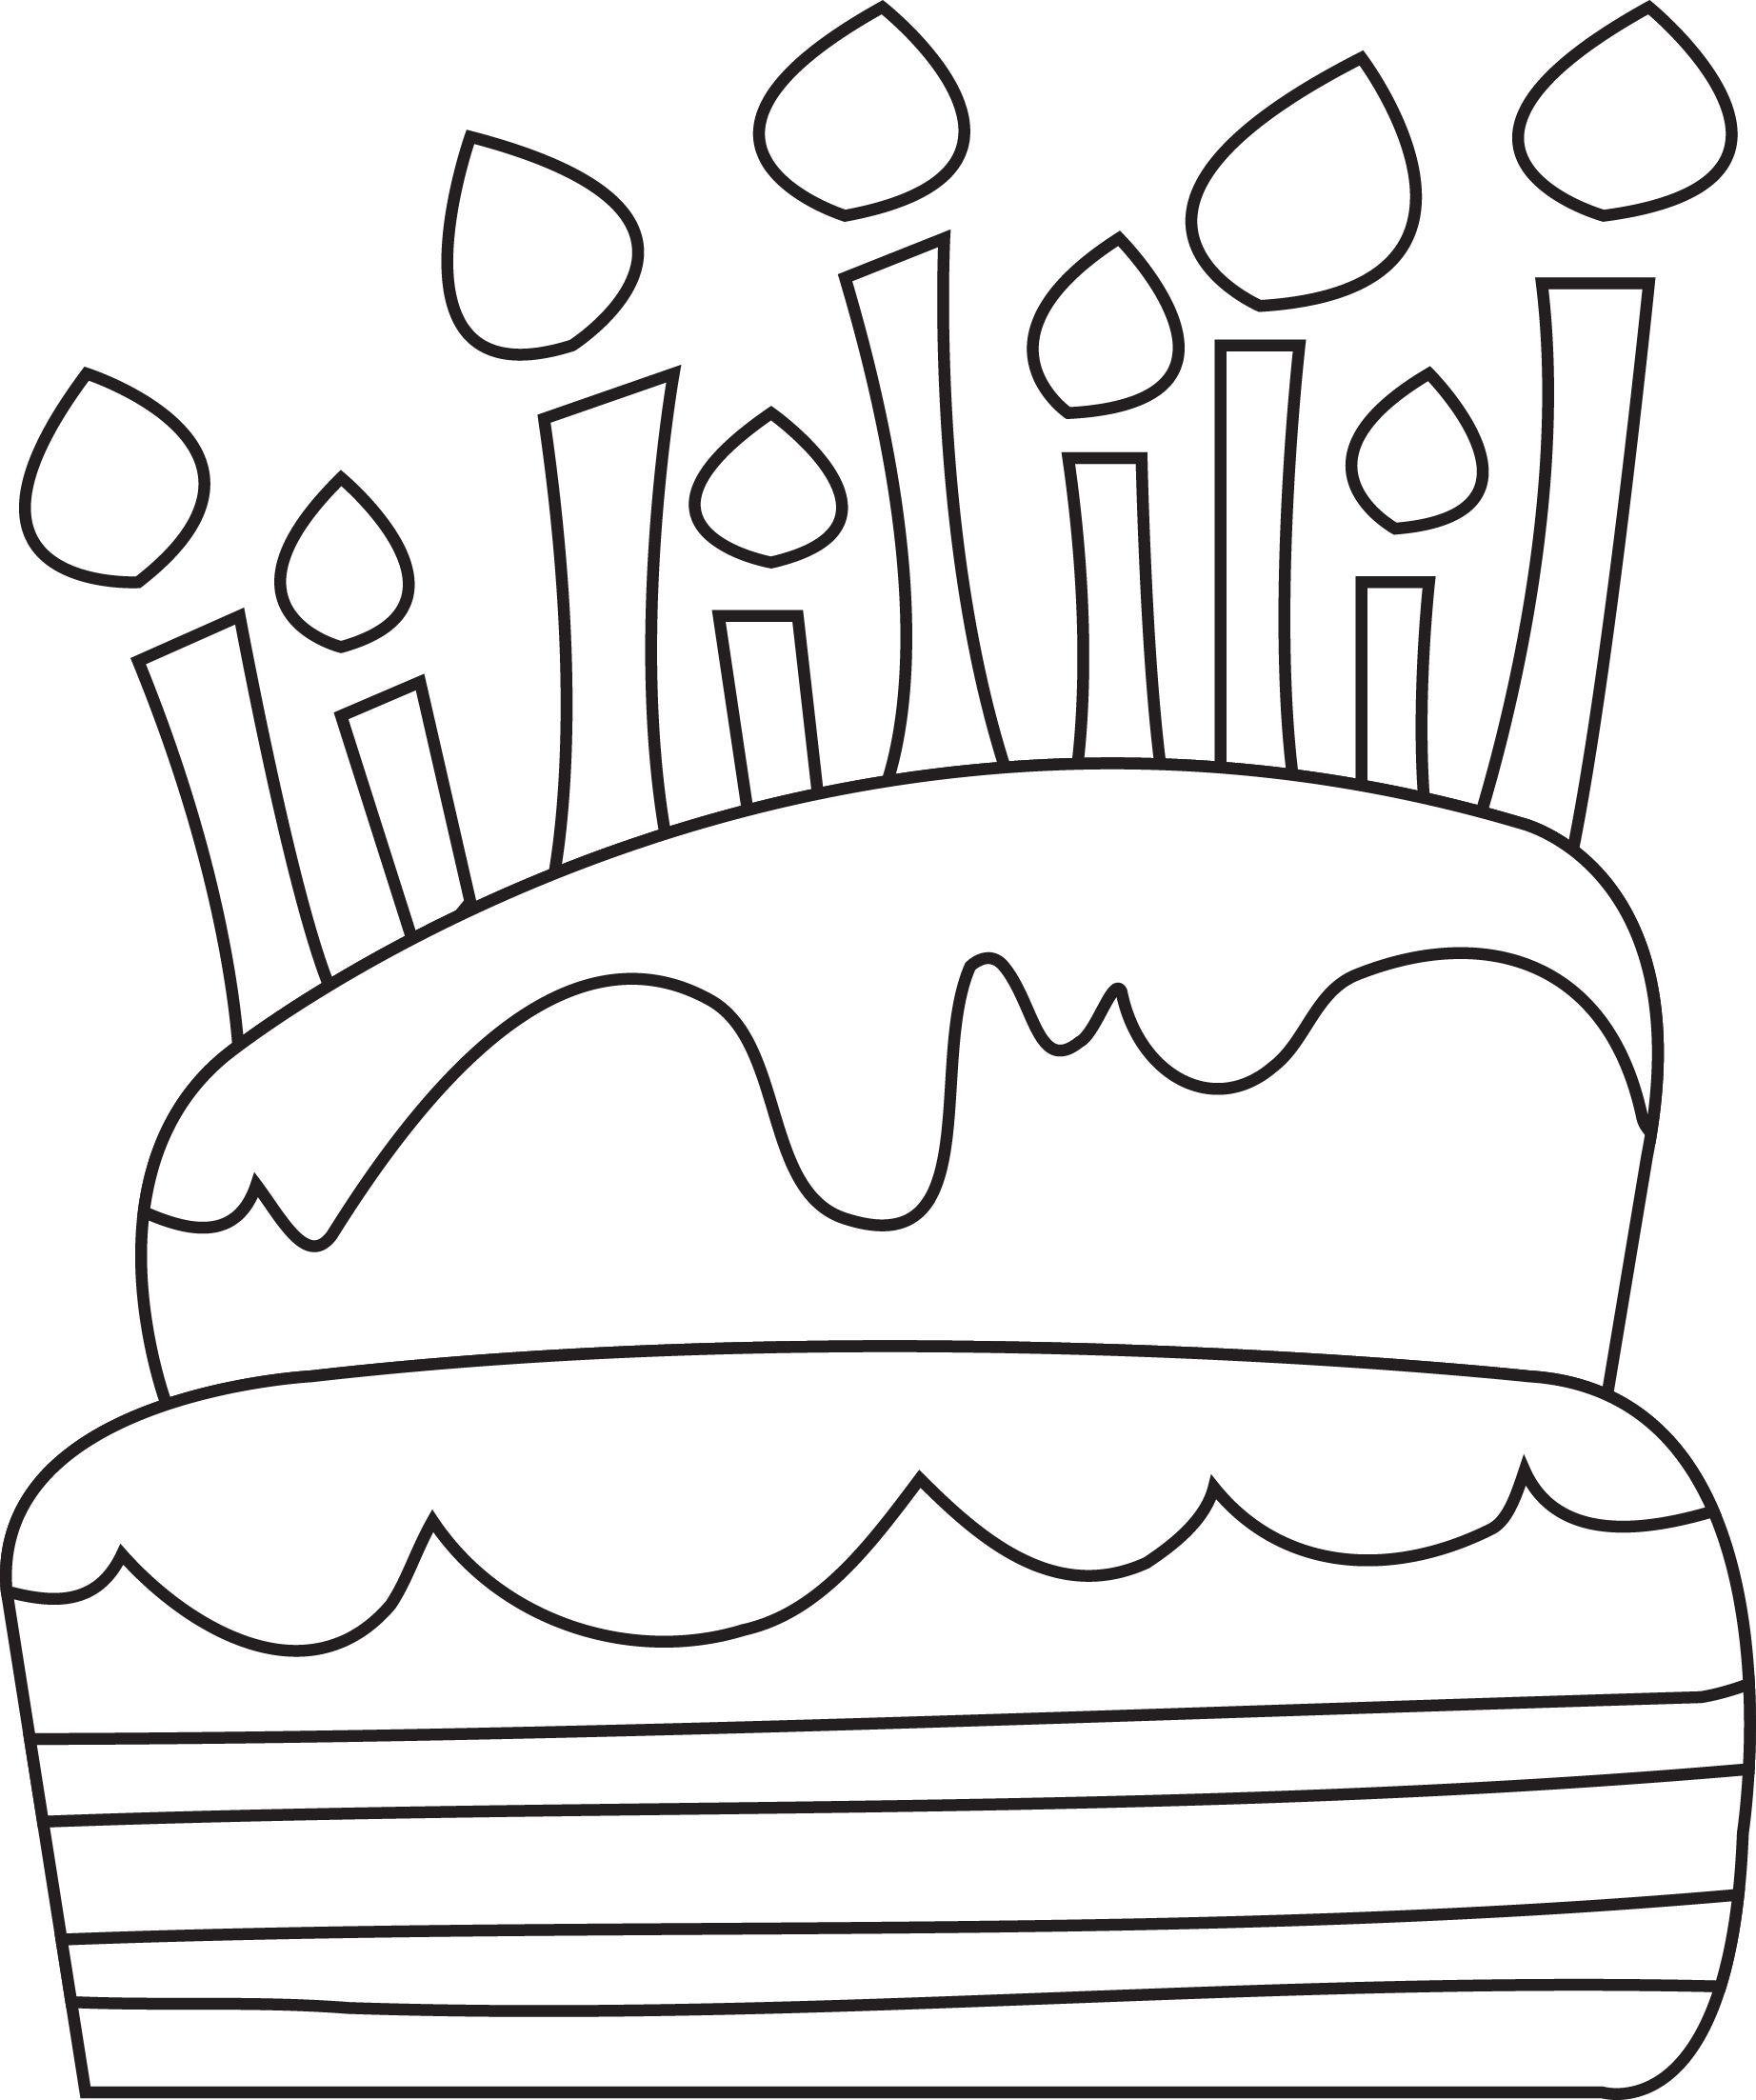 Birthday wishes besides Clipart Bday Cake 5 Candles Black And White 1 likewise Happy Birthday Coloring Pages as well Outline also Person Pg2. on computer cake with birthday candles